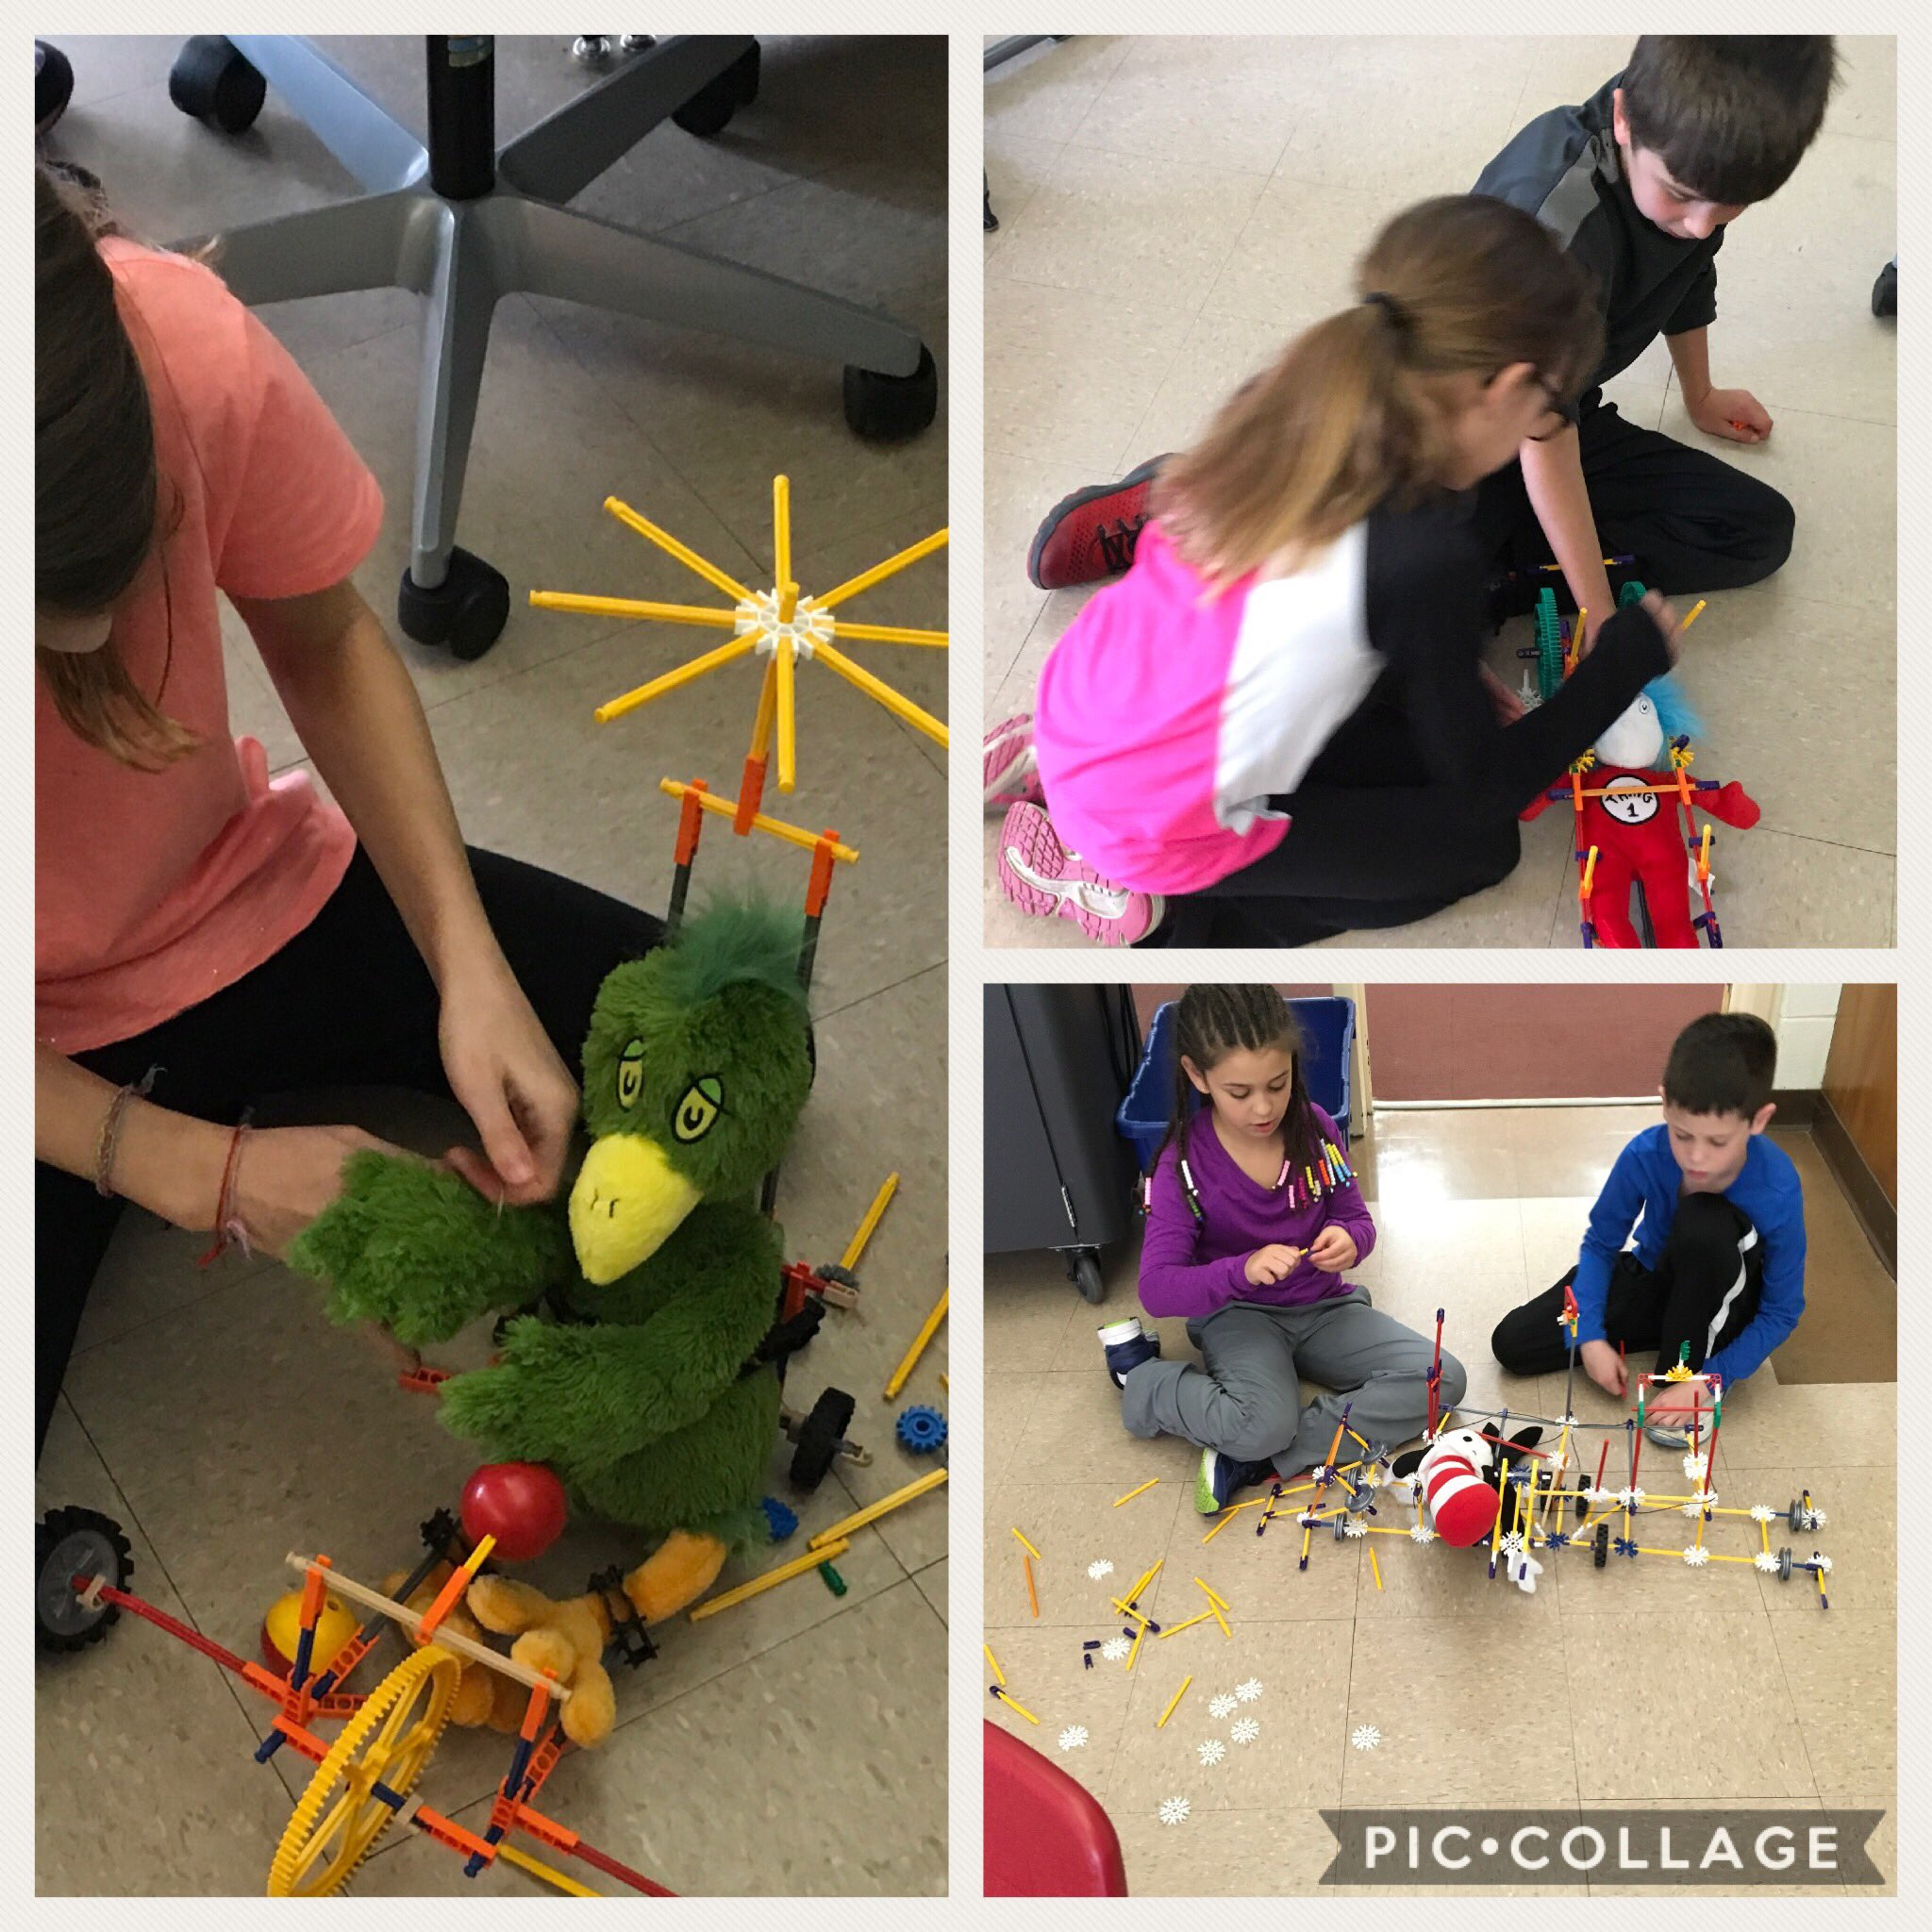 @pbahnick 's 3rd graders created Seuss-mobiles with K'Nex in our @109SouthPark Smart Lab! #engage109 #SP109 https://t.co/B0kZn0JOQs